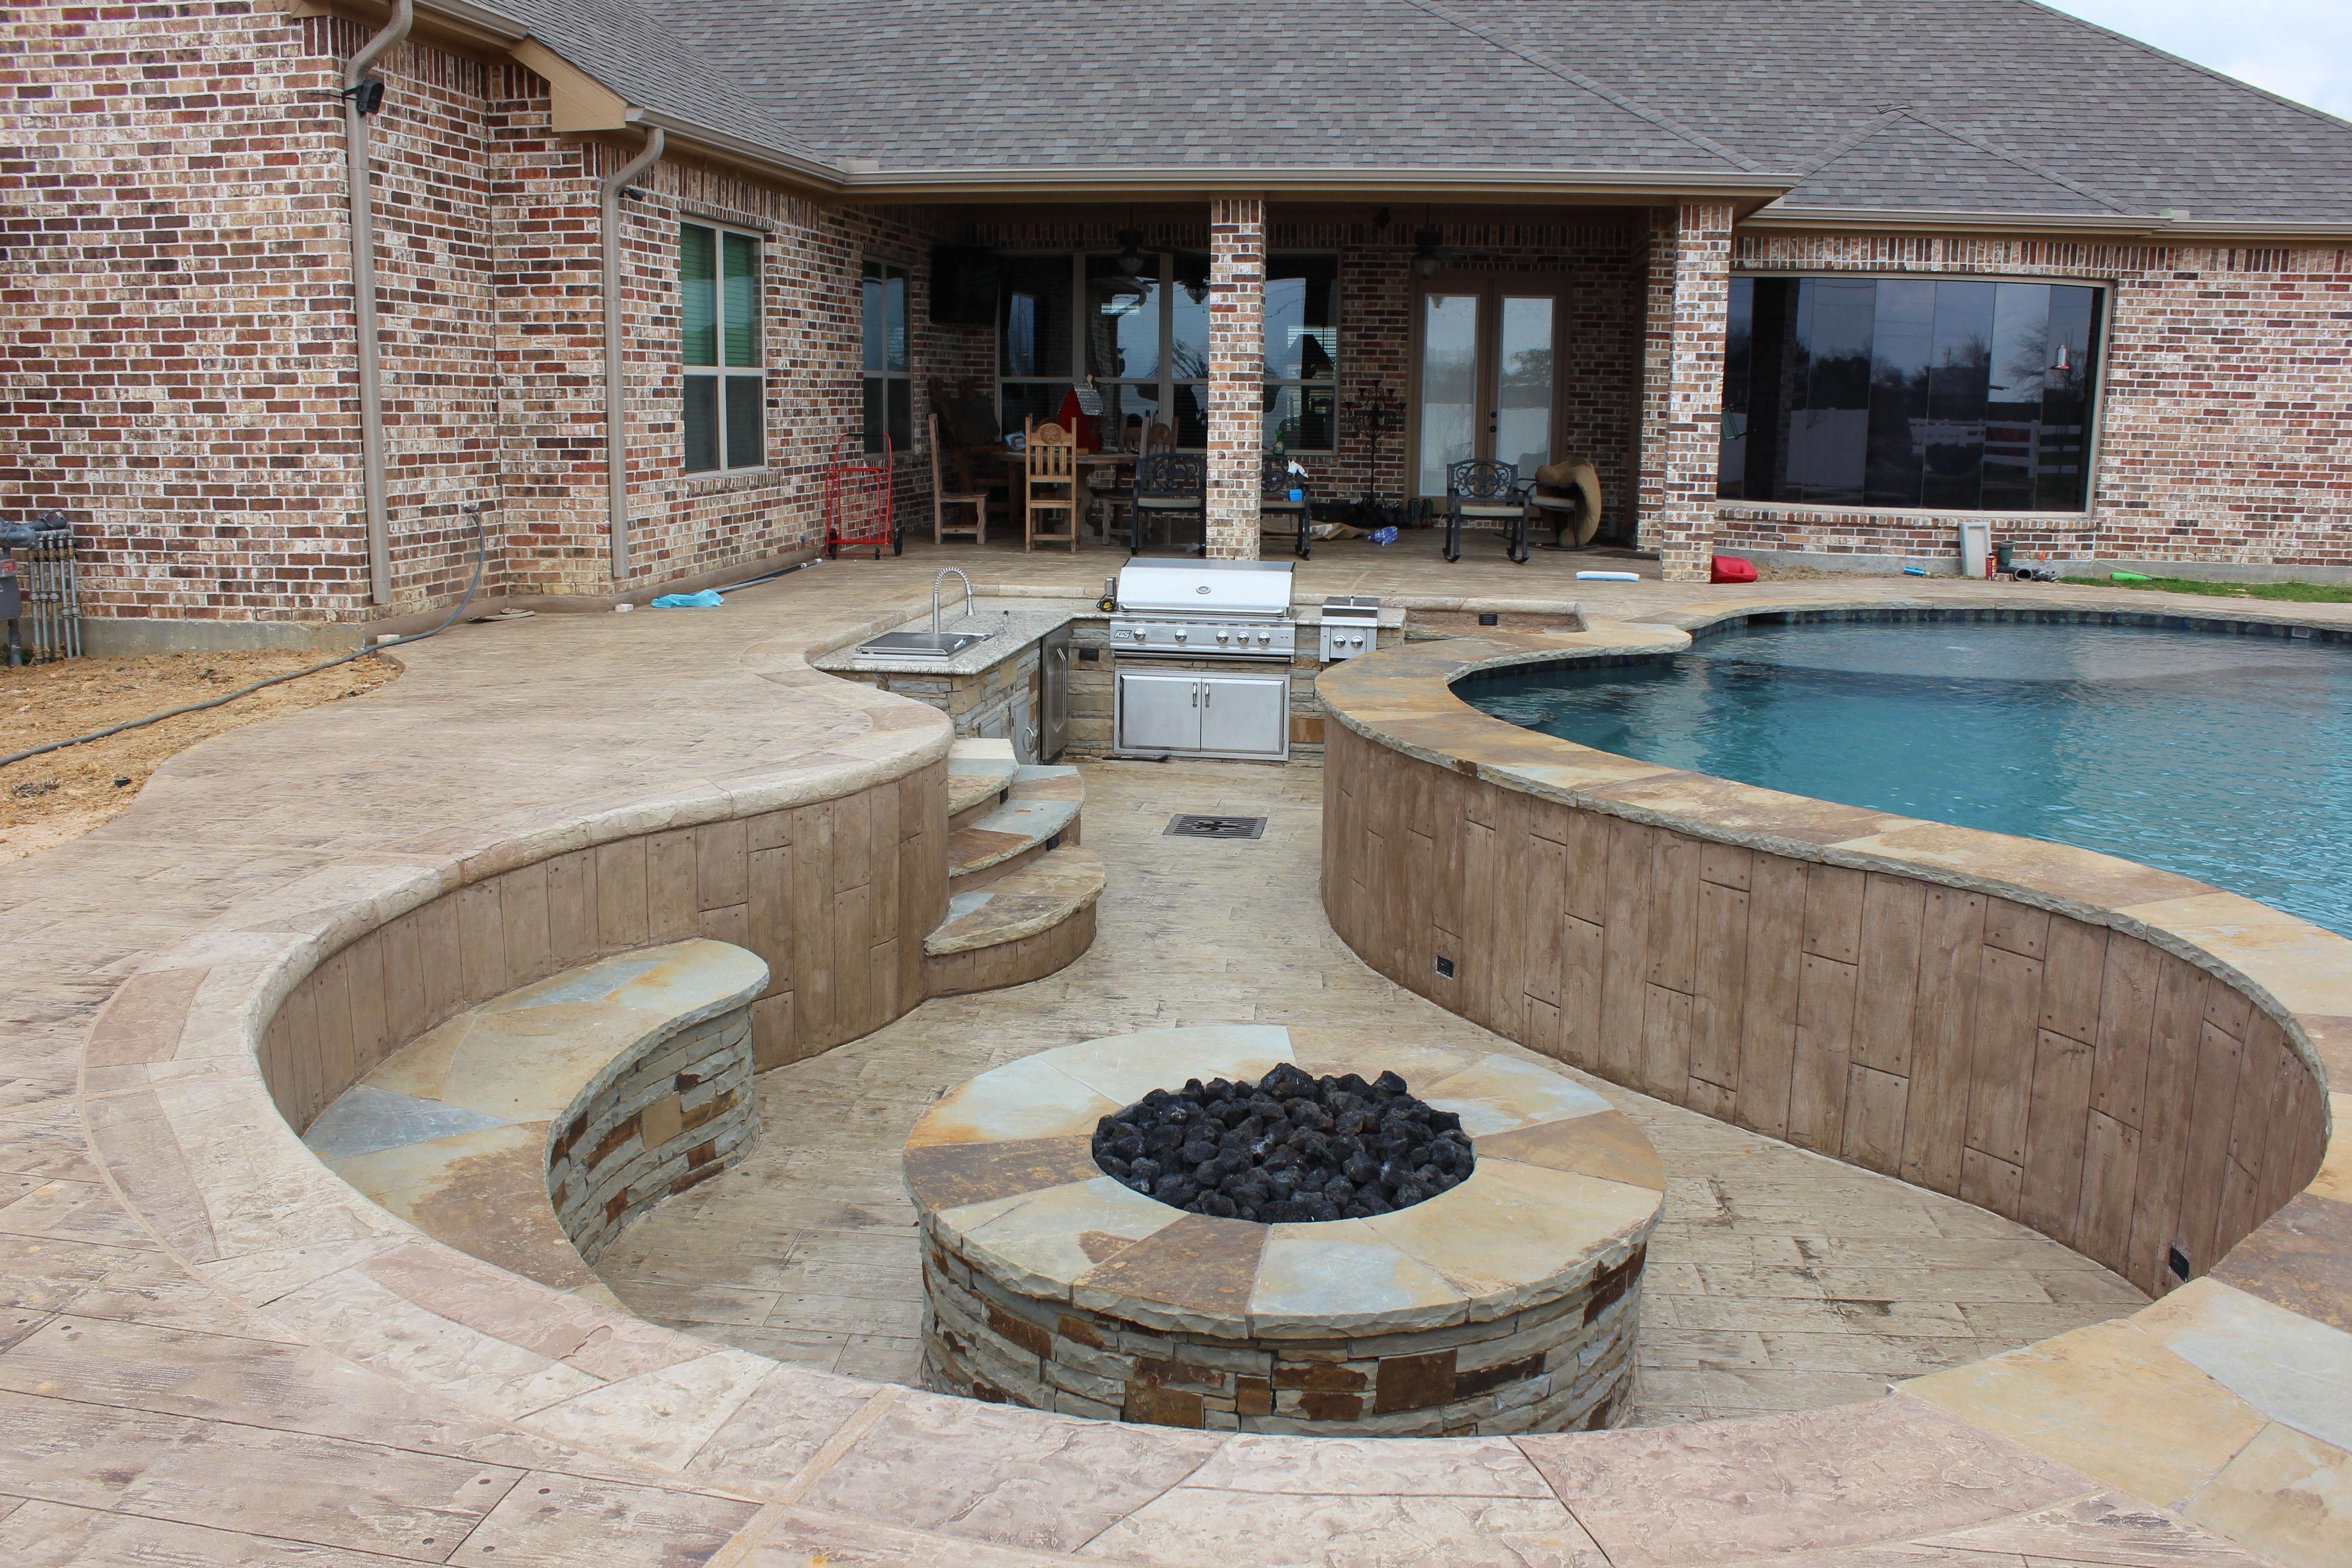 Sunken outdoor kitchen and fire pit with lazy river pool